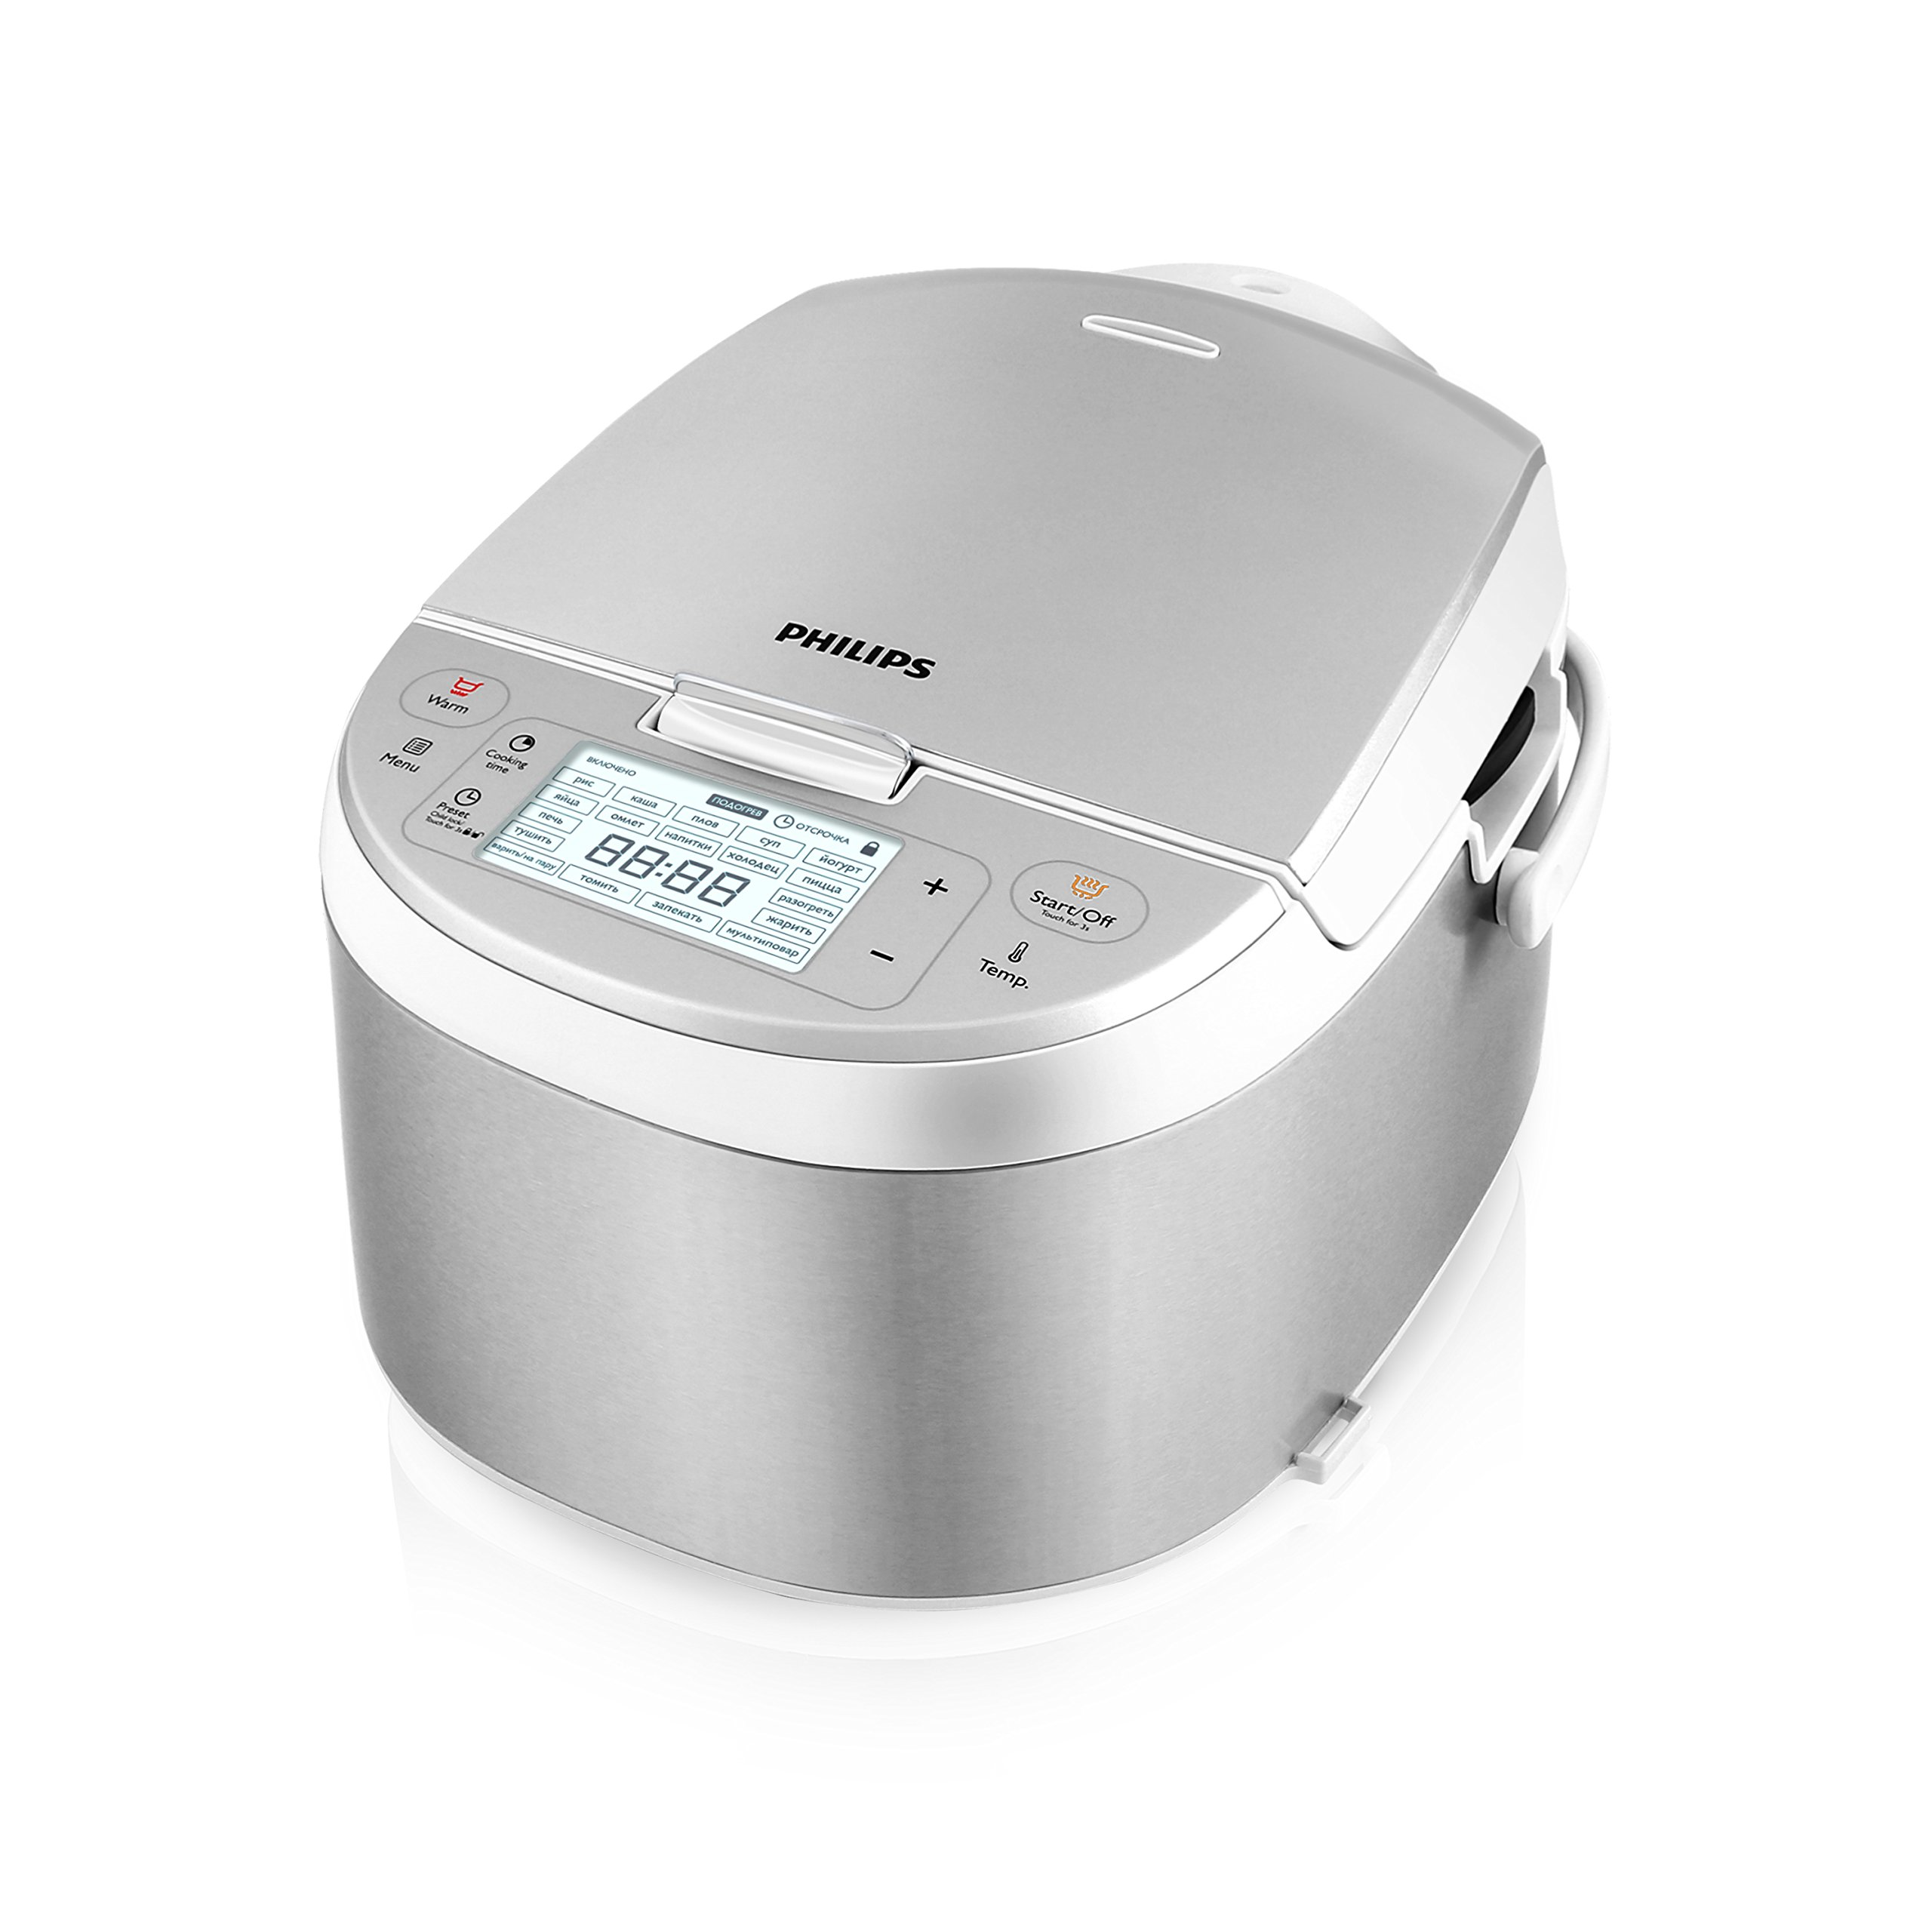 Philips All-in-One Cooker: Rice, Brown/Saute, Steamer, Slow Cooker, HD3095/87